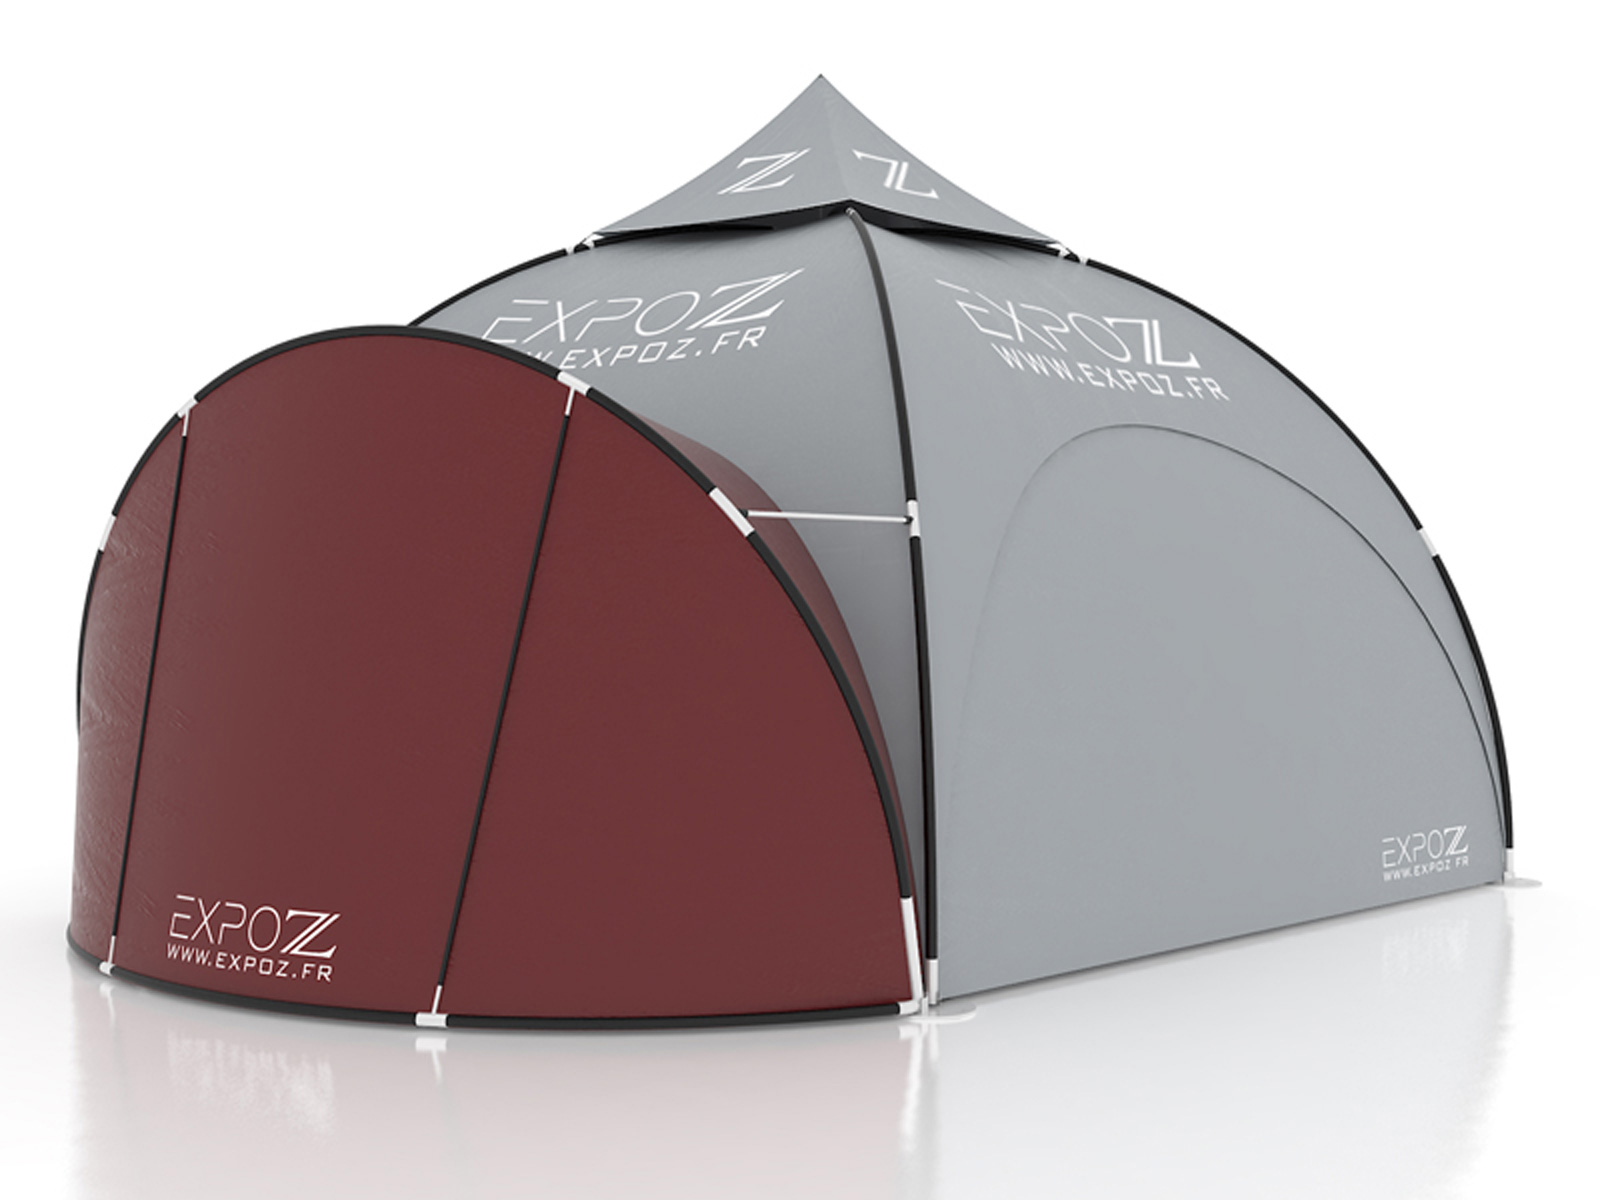 Extension visor - Expodome 6 m